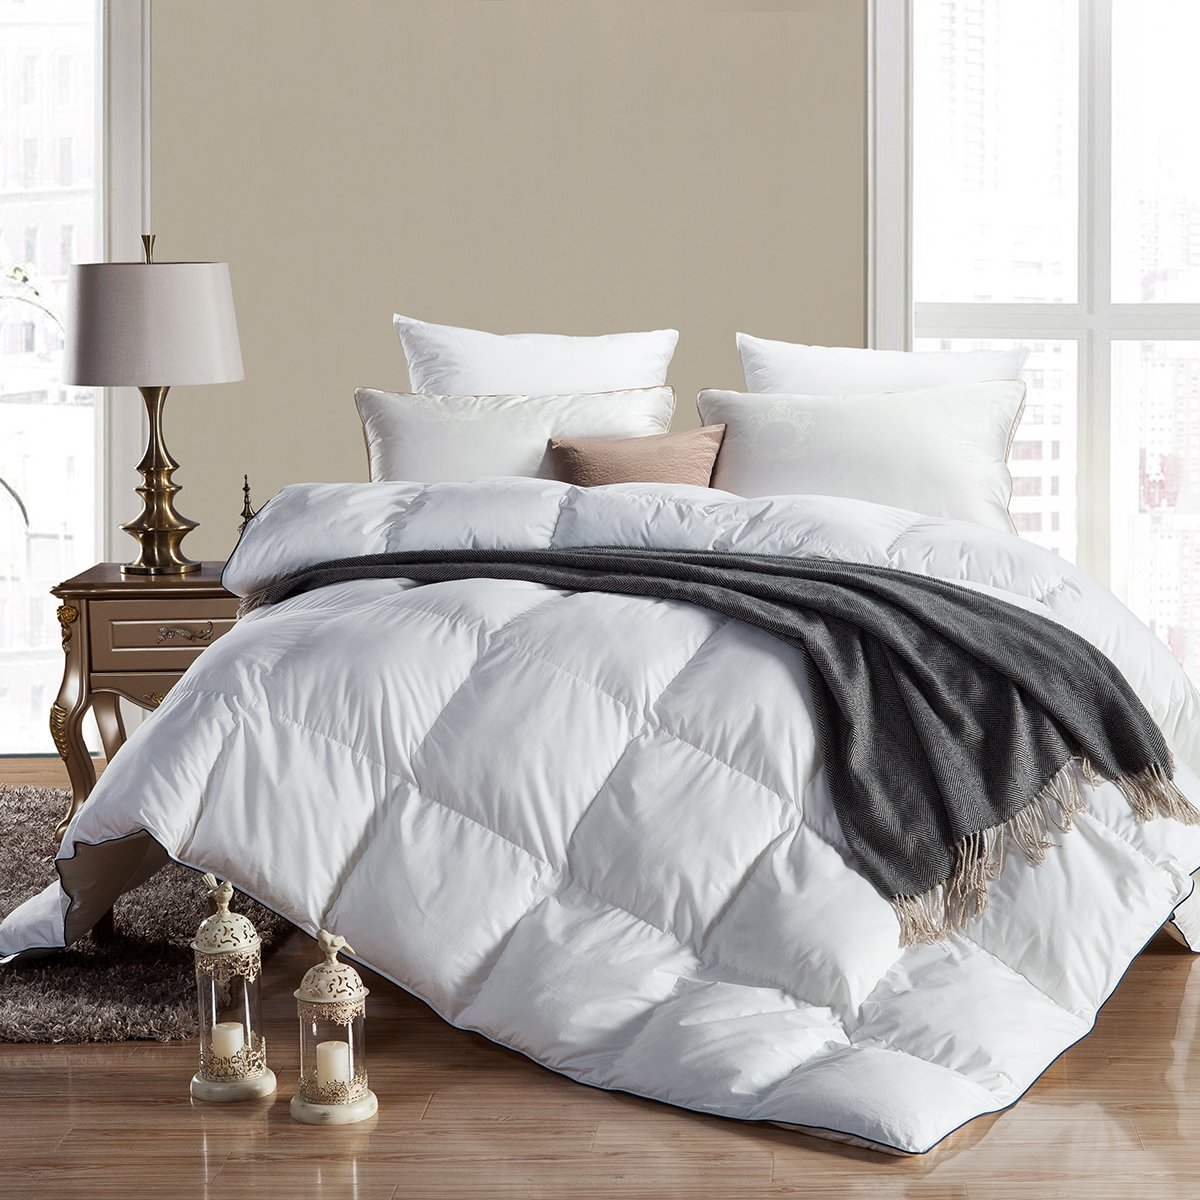 WENERSI Premium Goose Down Comforter King Size,Duvet Insert 600TC - 100% Cotton Cover with ULTRA FRESH Treatment, 700+ Fill Power,White Solid